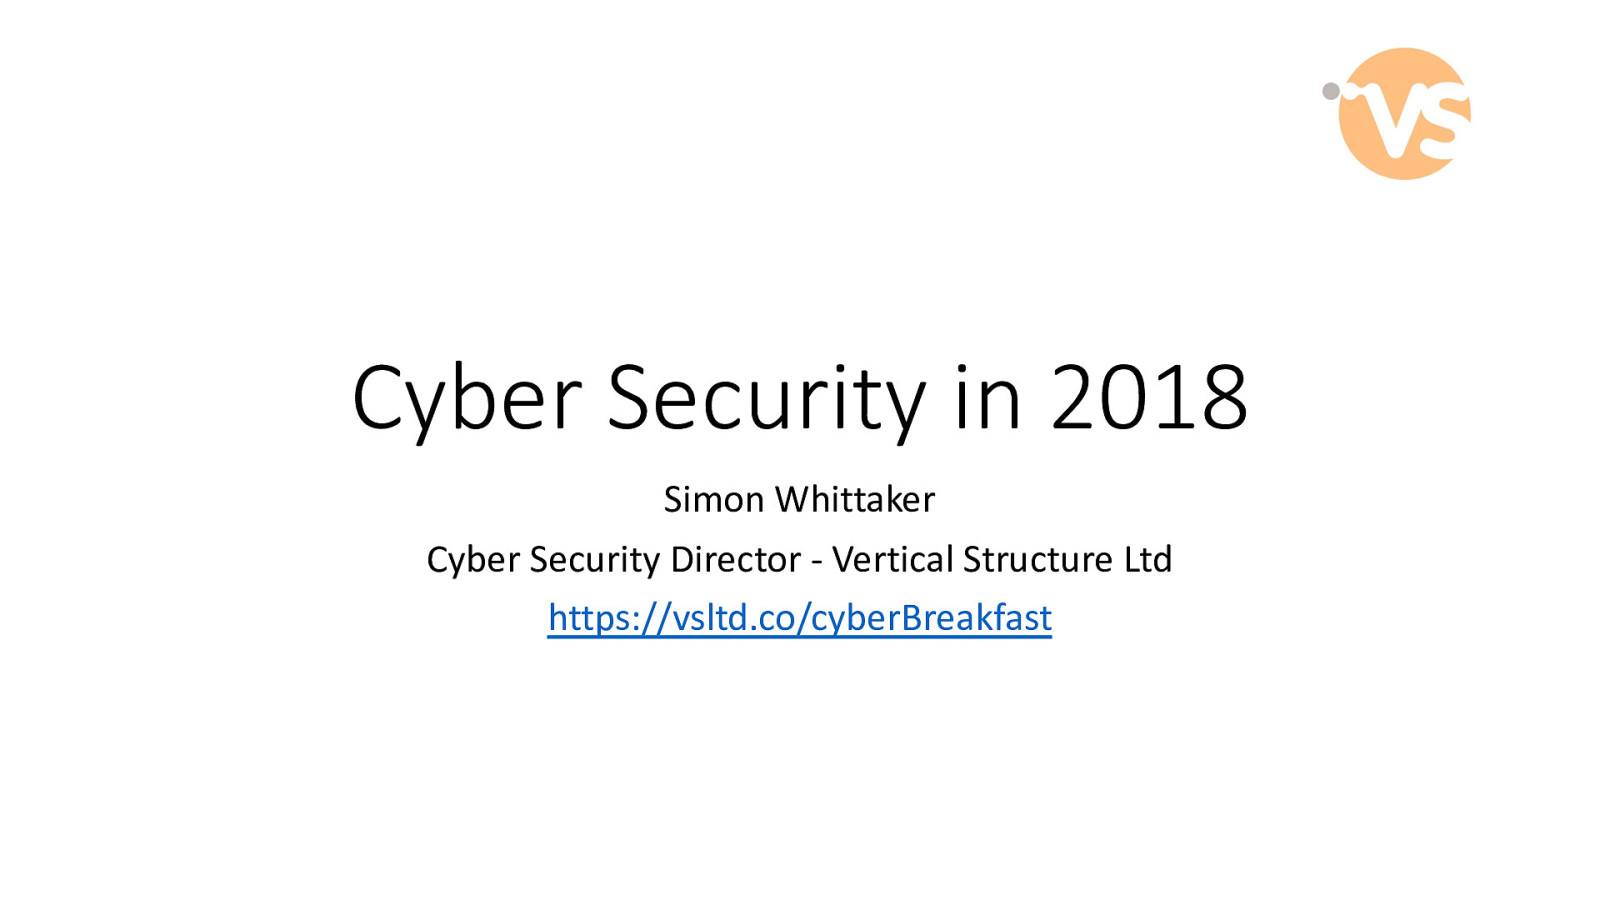 Leading the way for local businesses – cyber security breakfast by Simon Whittaker